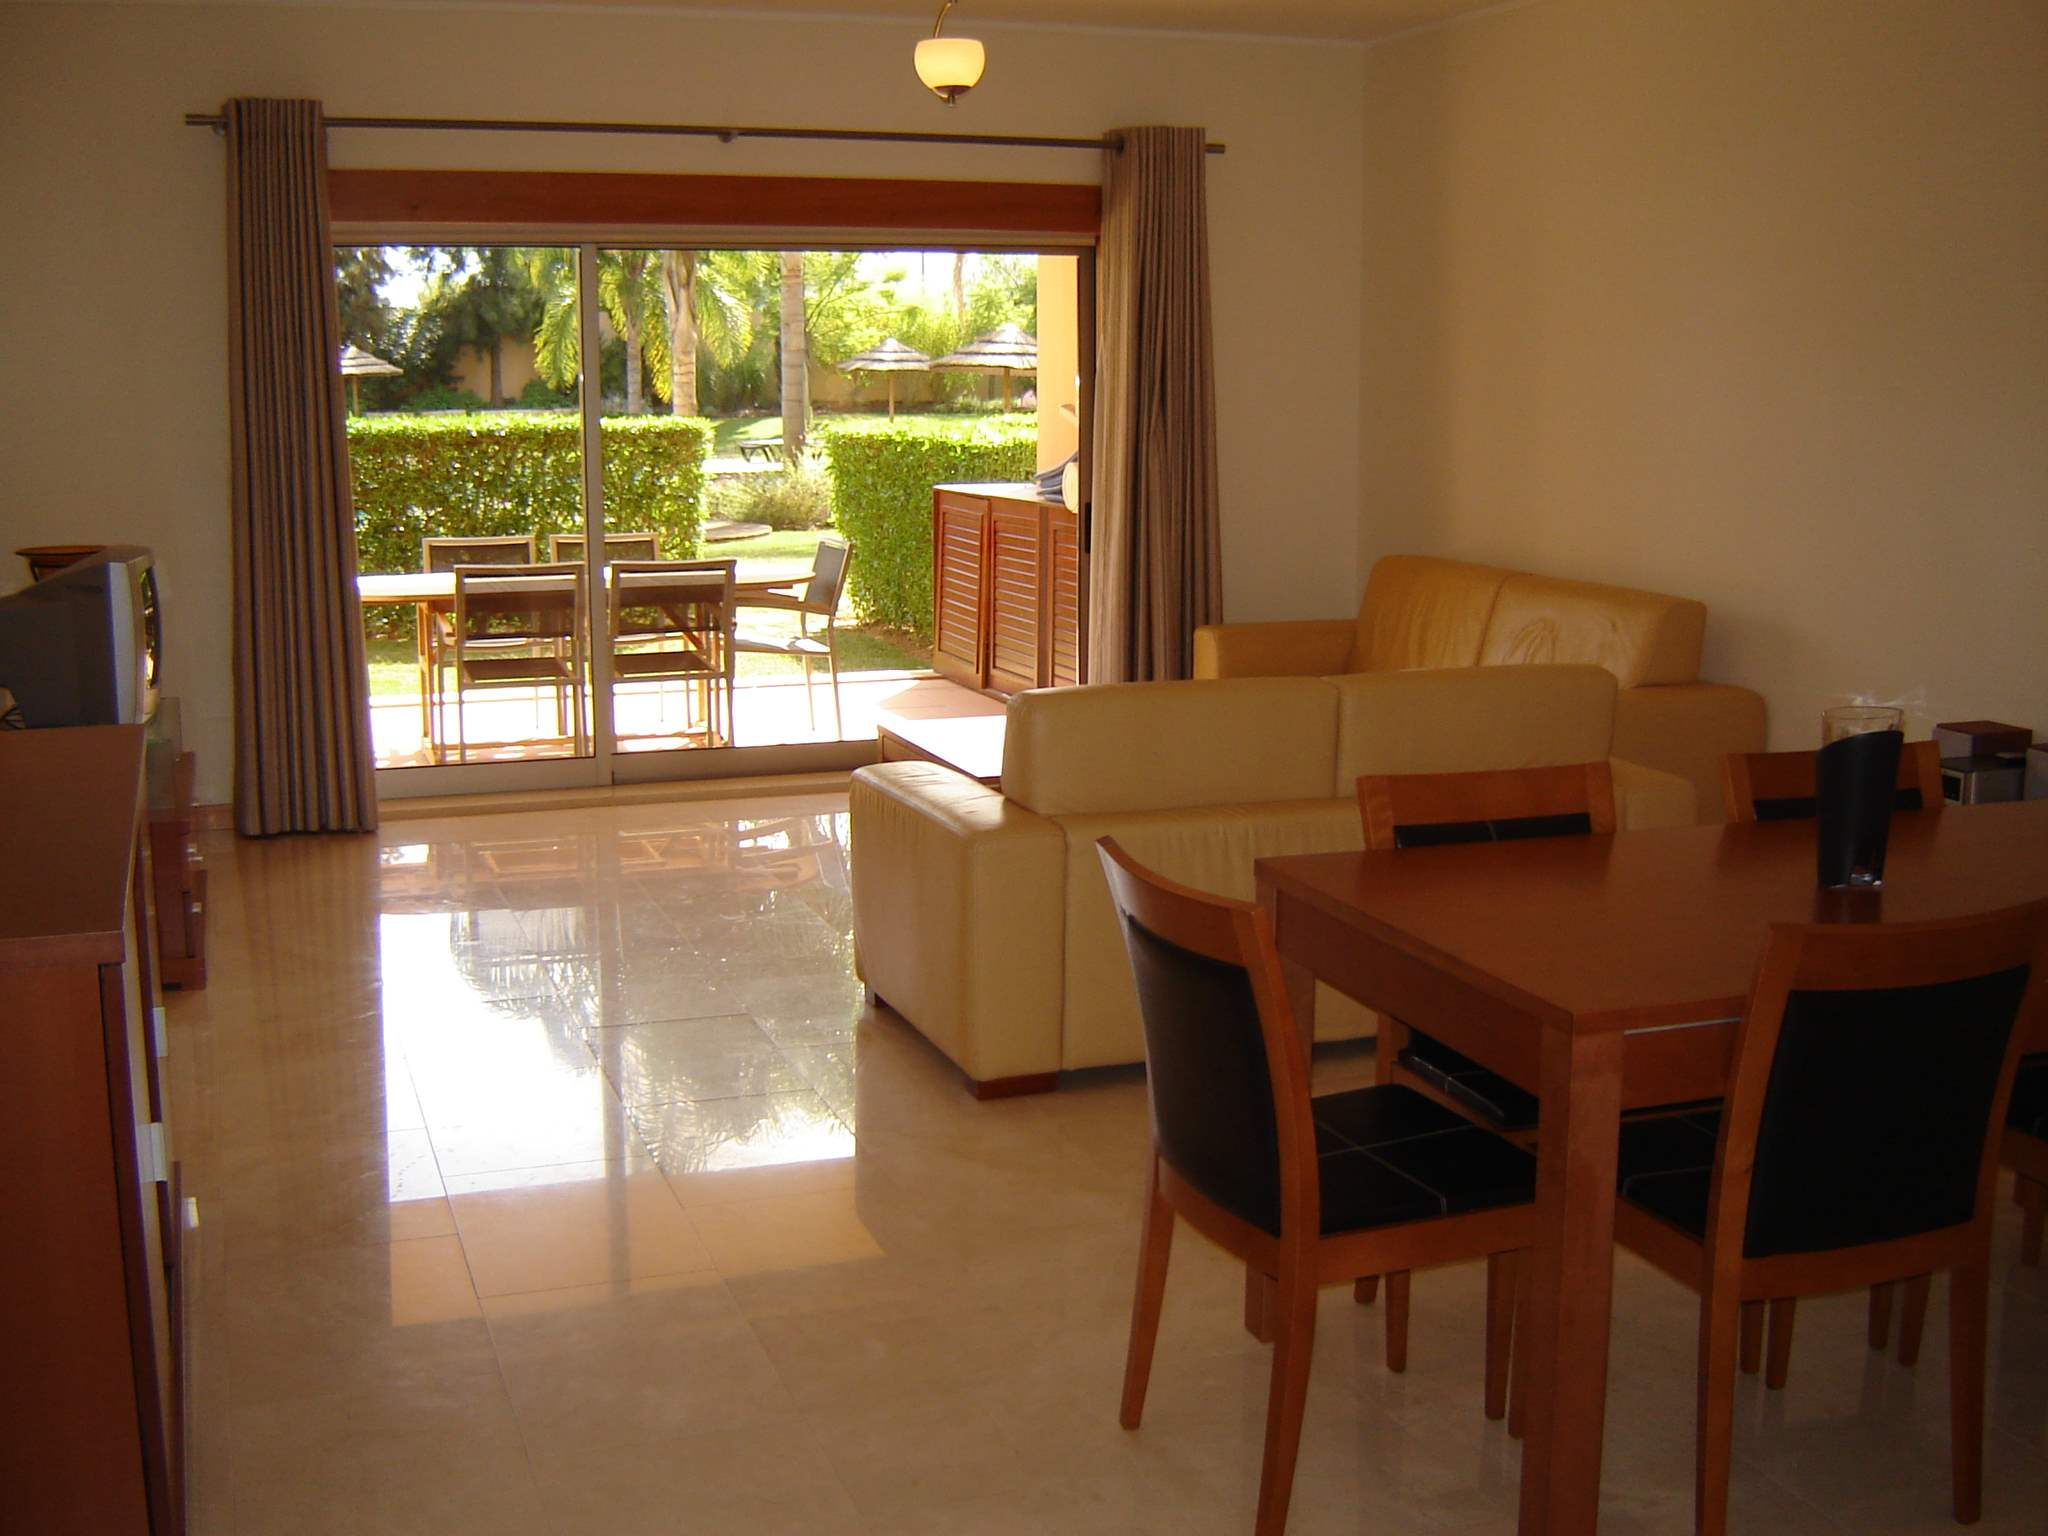 Apartment Majoka, 2 bedroom apartment in Vilamoura Area, Algarve Photo #3